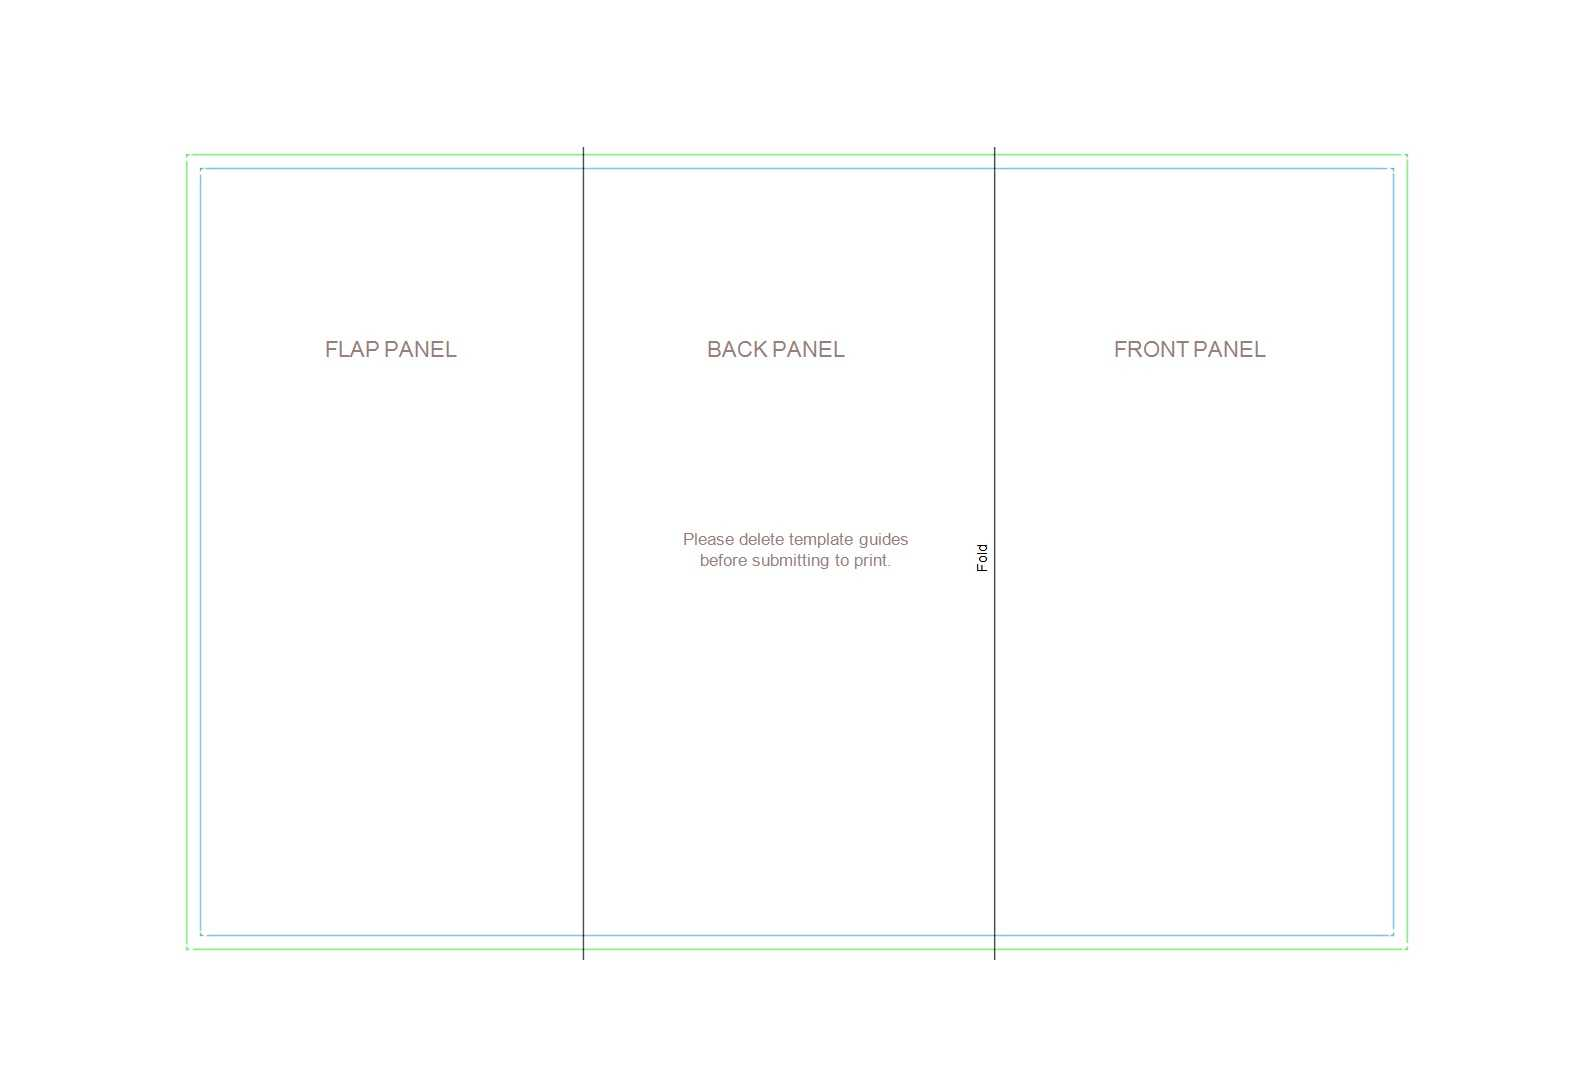 50 Free Pamphlet Templates [Word / Google Docs] ᐅ Templatelab With Google Drive Brochure Template